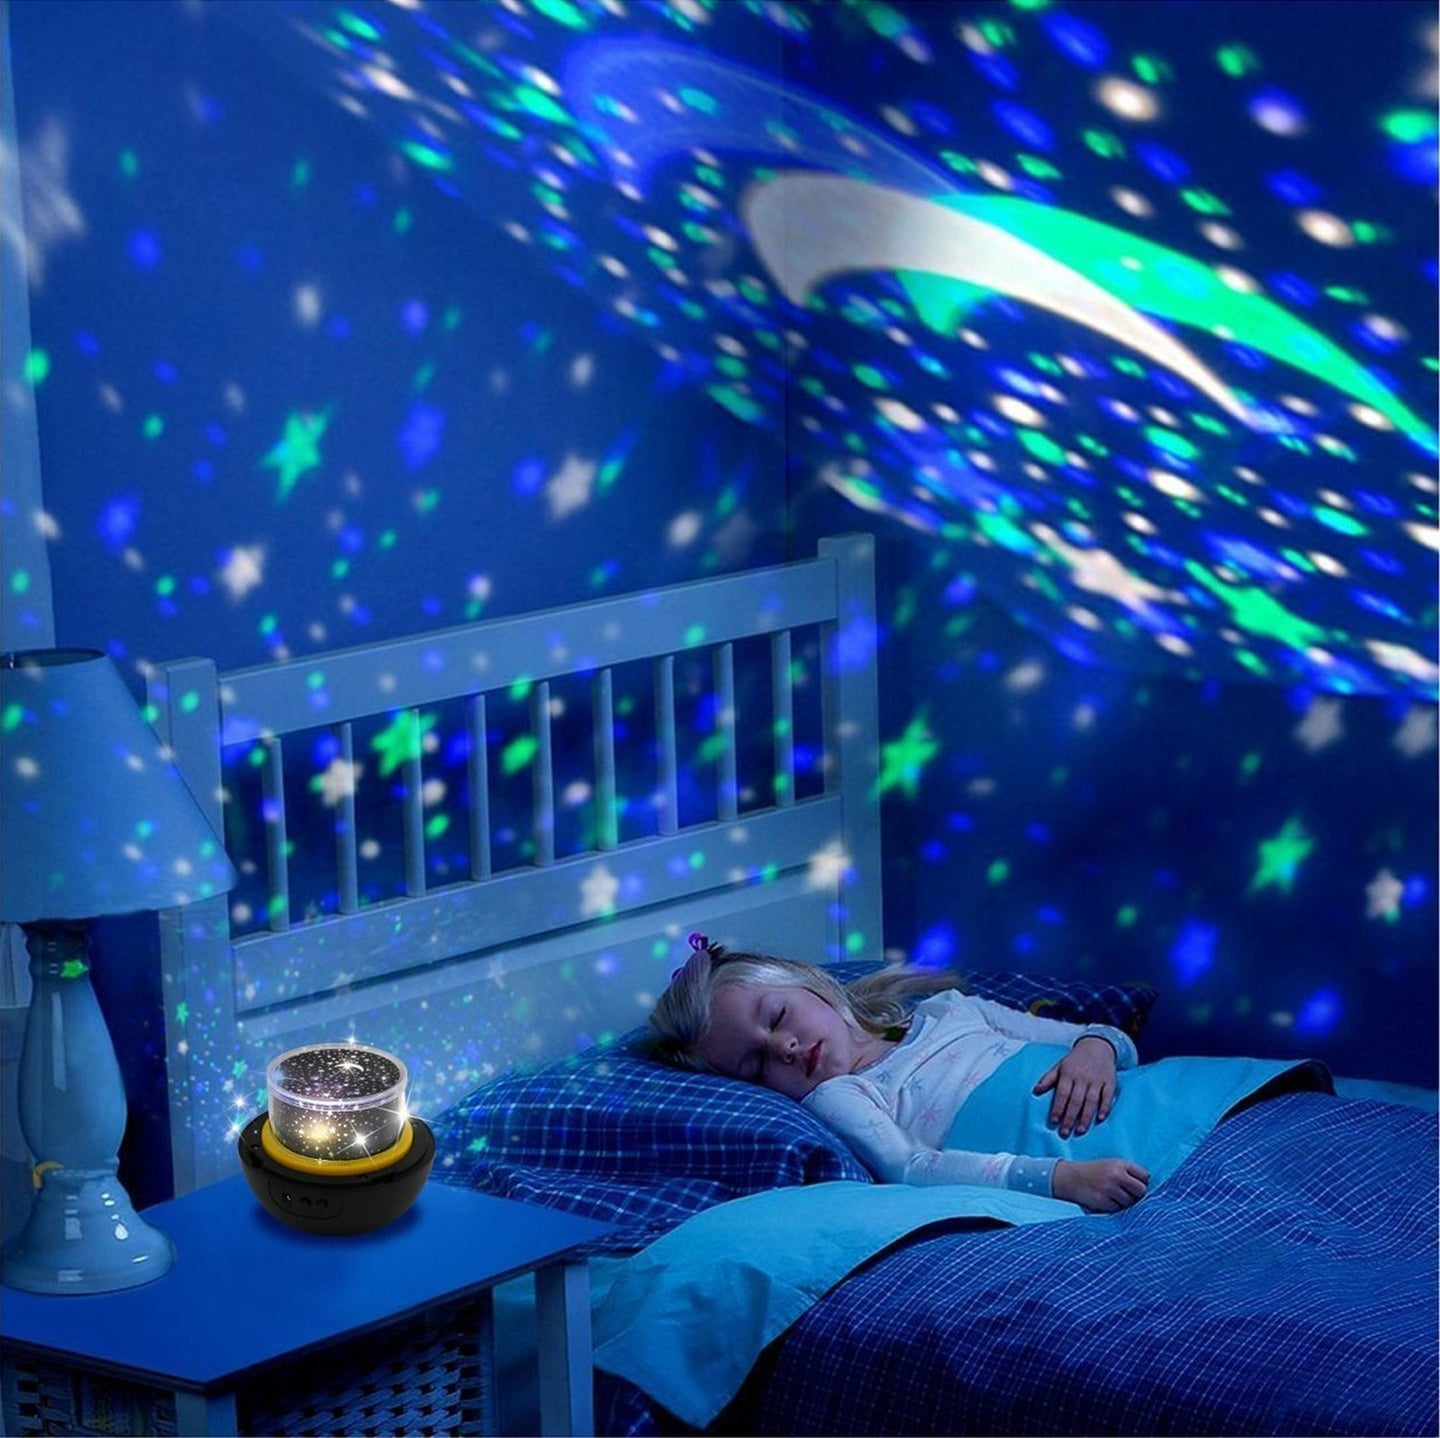 a child sleeping in a bed with a projected night-light.